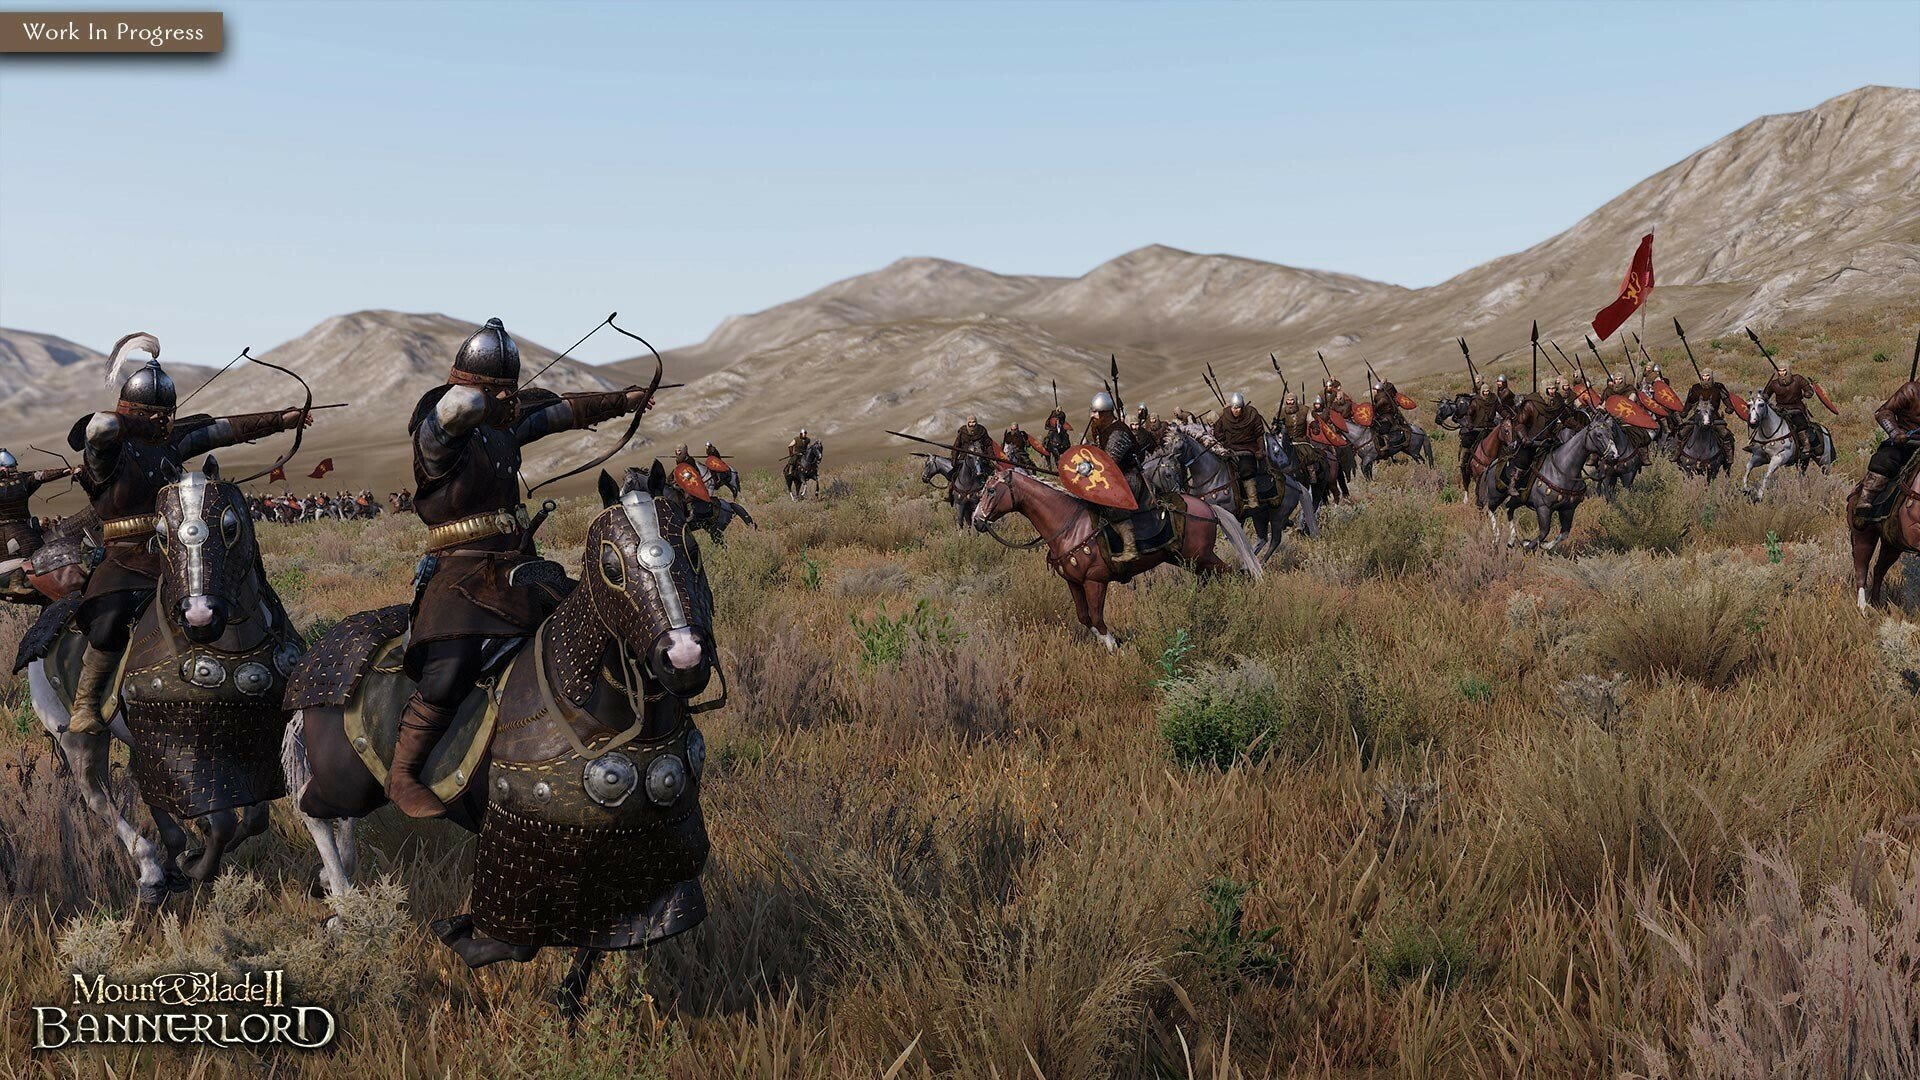 Screenshot for the game Mount & Blade II: Bannerlord v. 1.5.9.267611